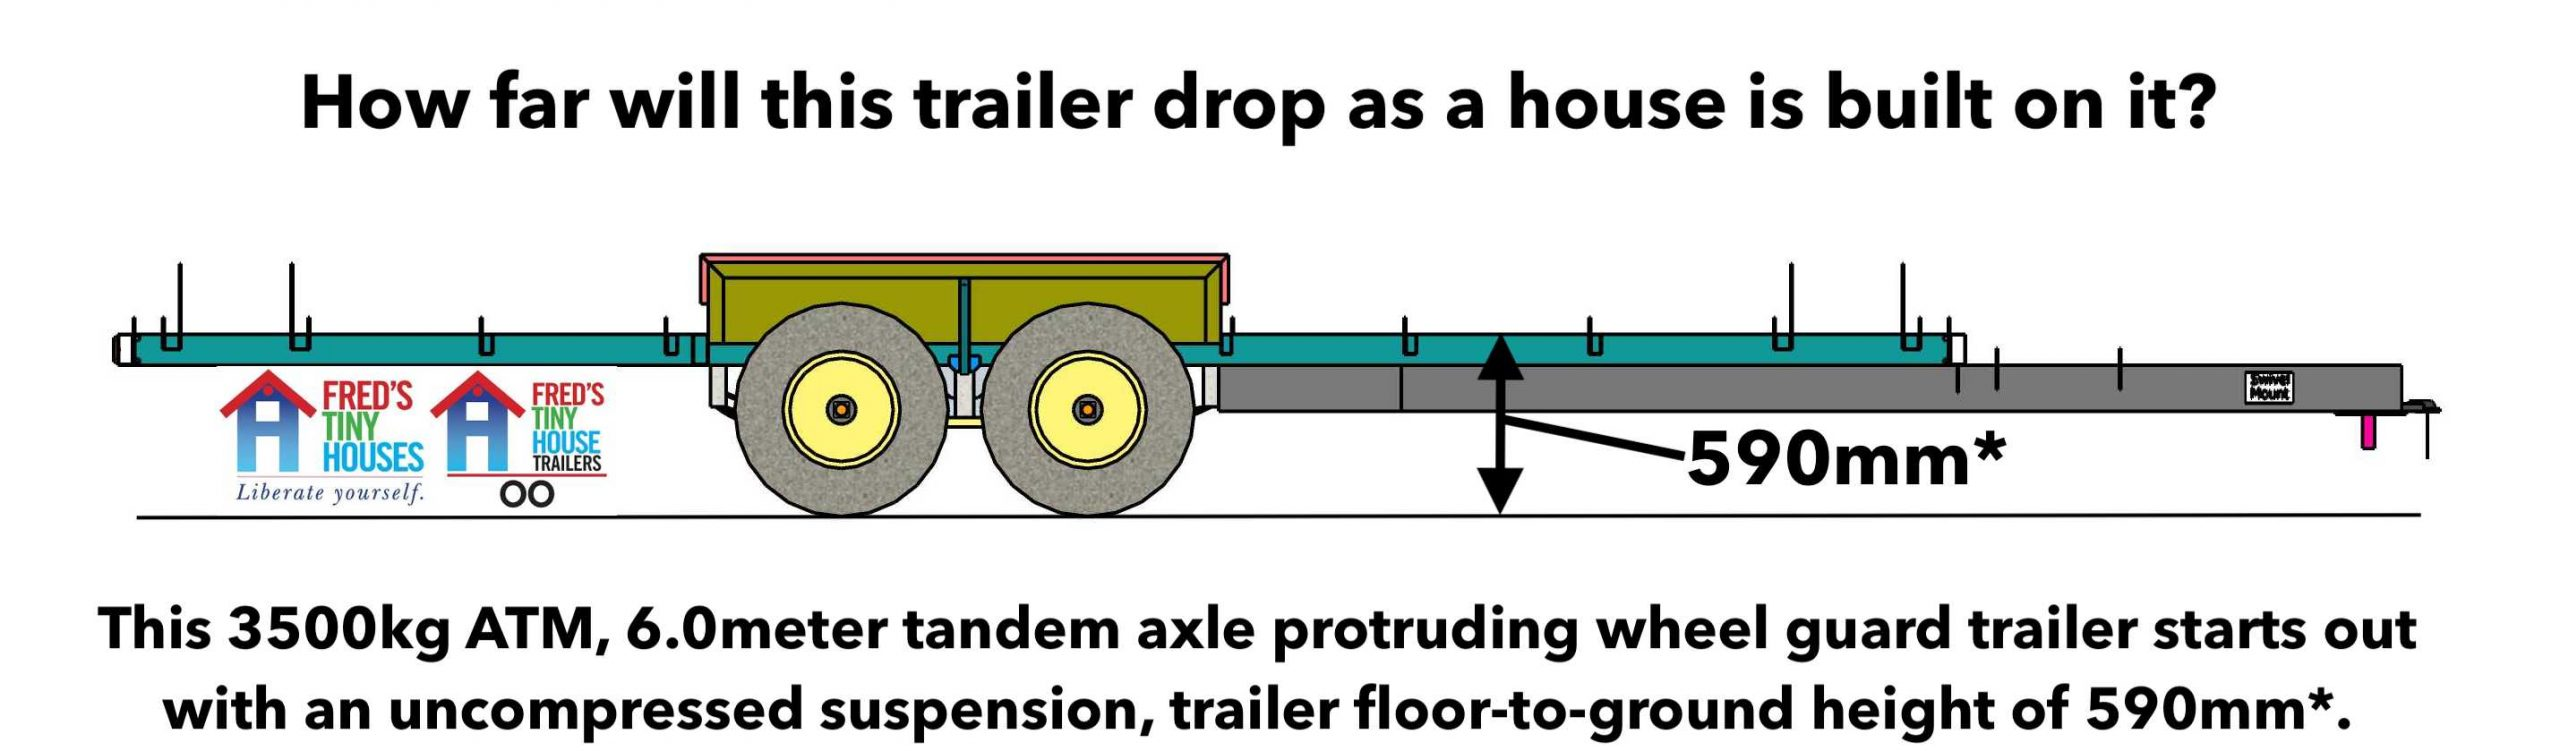 This 3500kg ATM, 6.0meter tandem axle protruding wheel guard trailer starts out with an uncompressed suspension, trailer floor-to-ground height of 590mm*.